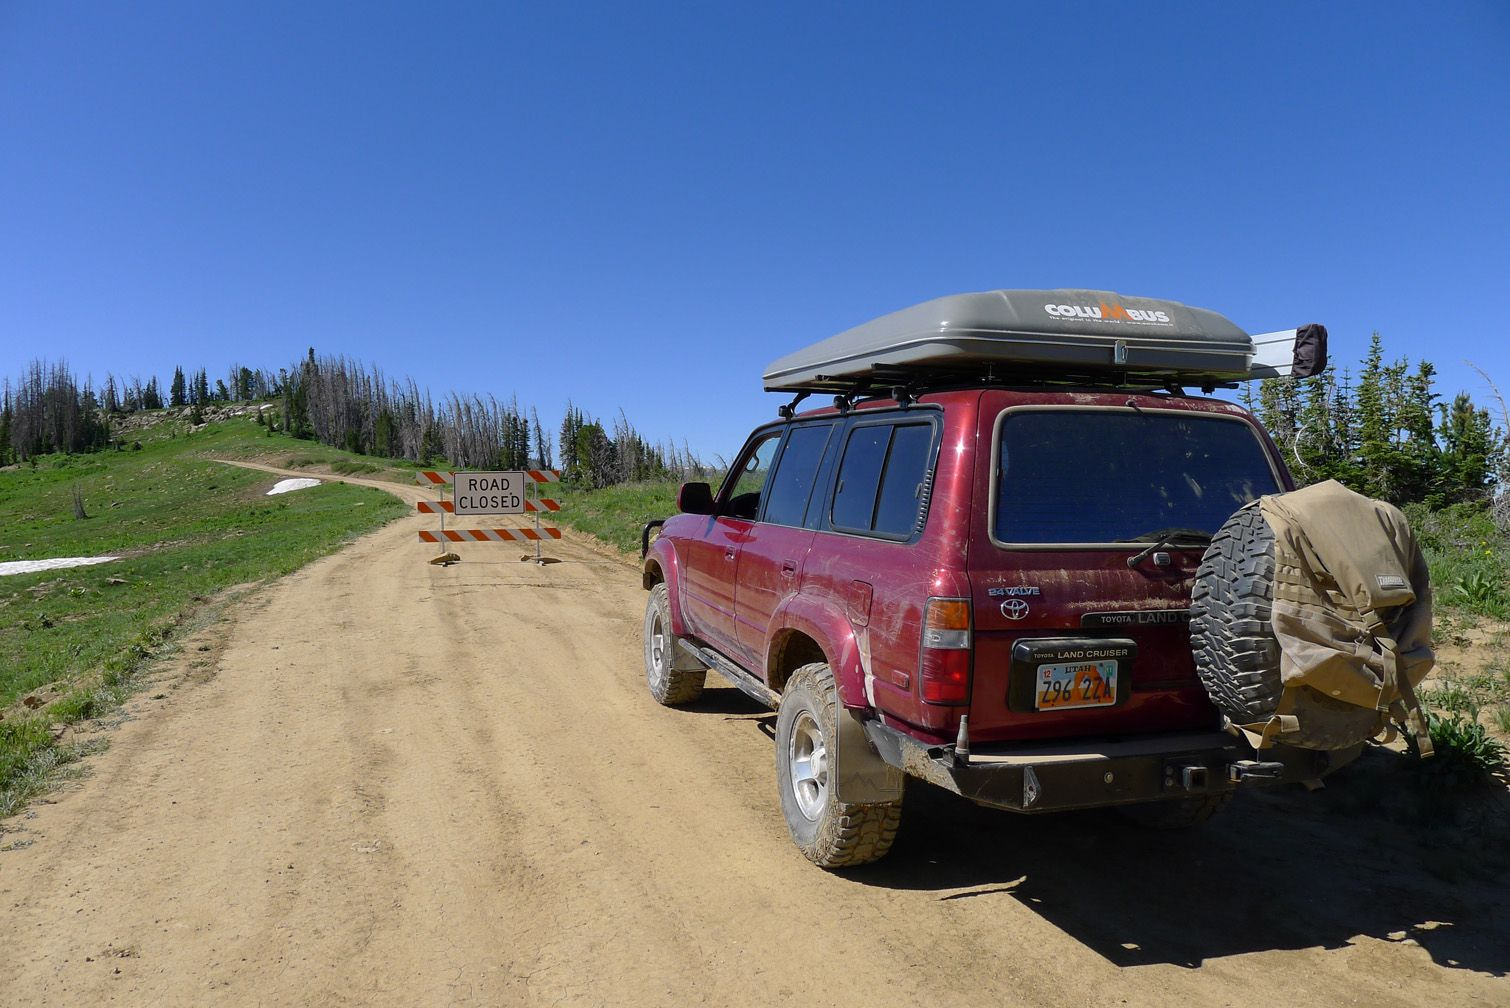 1995 Toyota Land Cruiser FZJ80 With AutoHome Columbus Rooftop Tent.